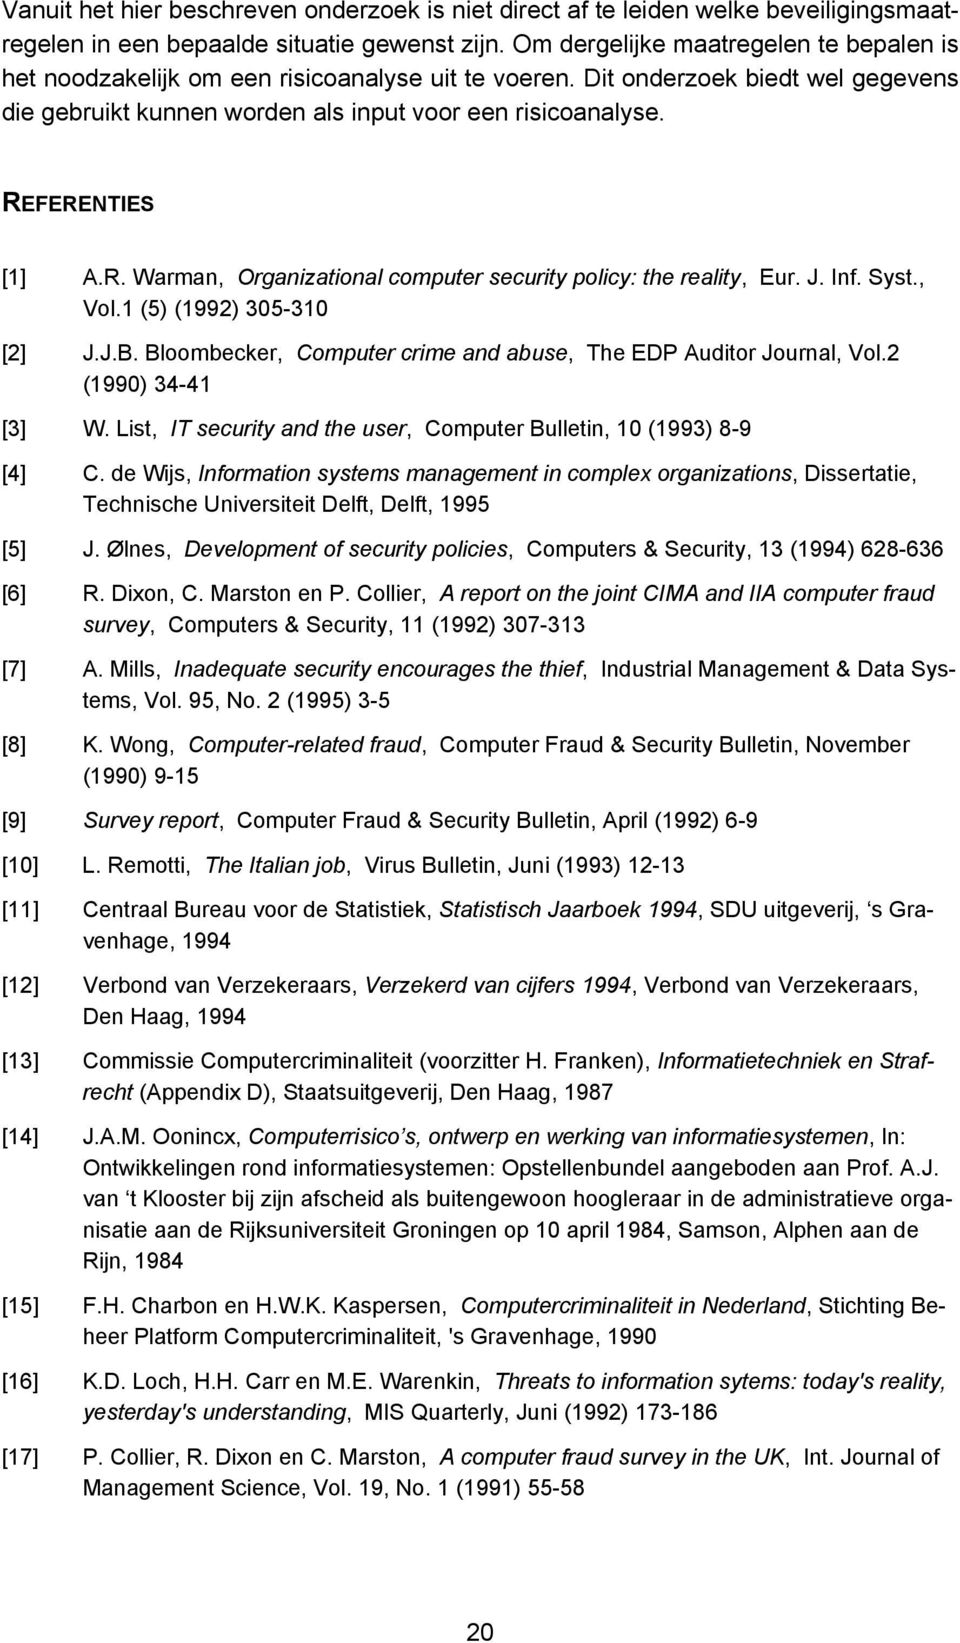 REFERENTIES [] A.R. Warman, Organizational computer security policy: the reality, Eur. J. Inf. Syst., Vol. (5) (99) 35-3 [] J.J.B. Bloombecker, Computer crime and abuse, The EDP Auditor Journal, Vol.